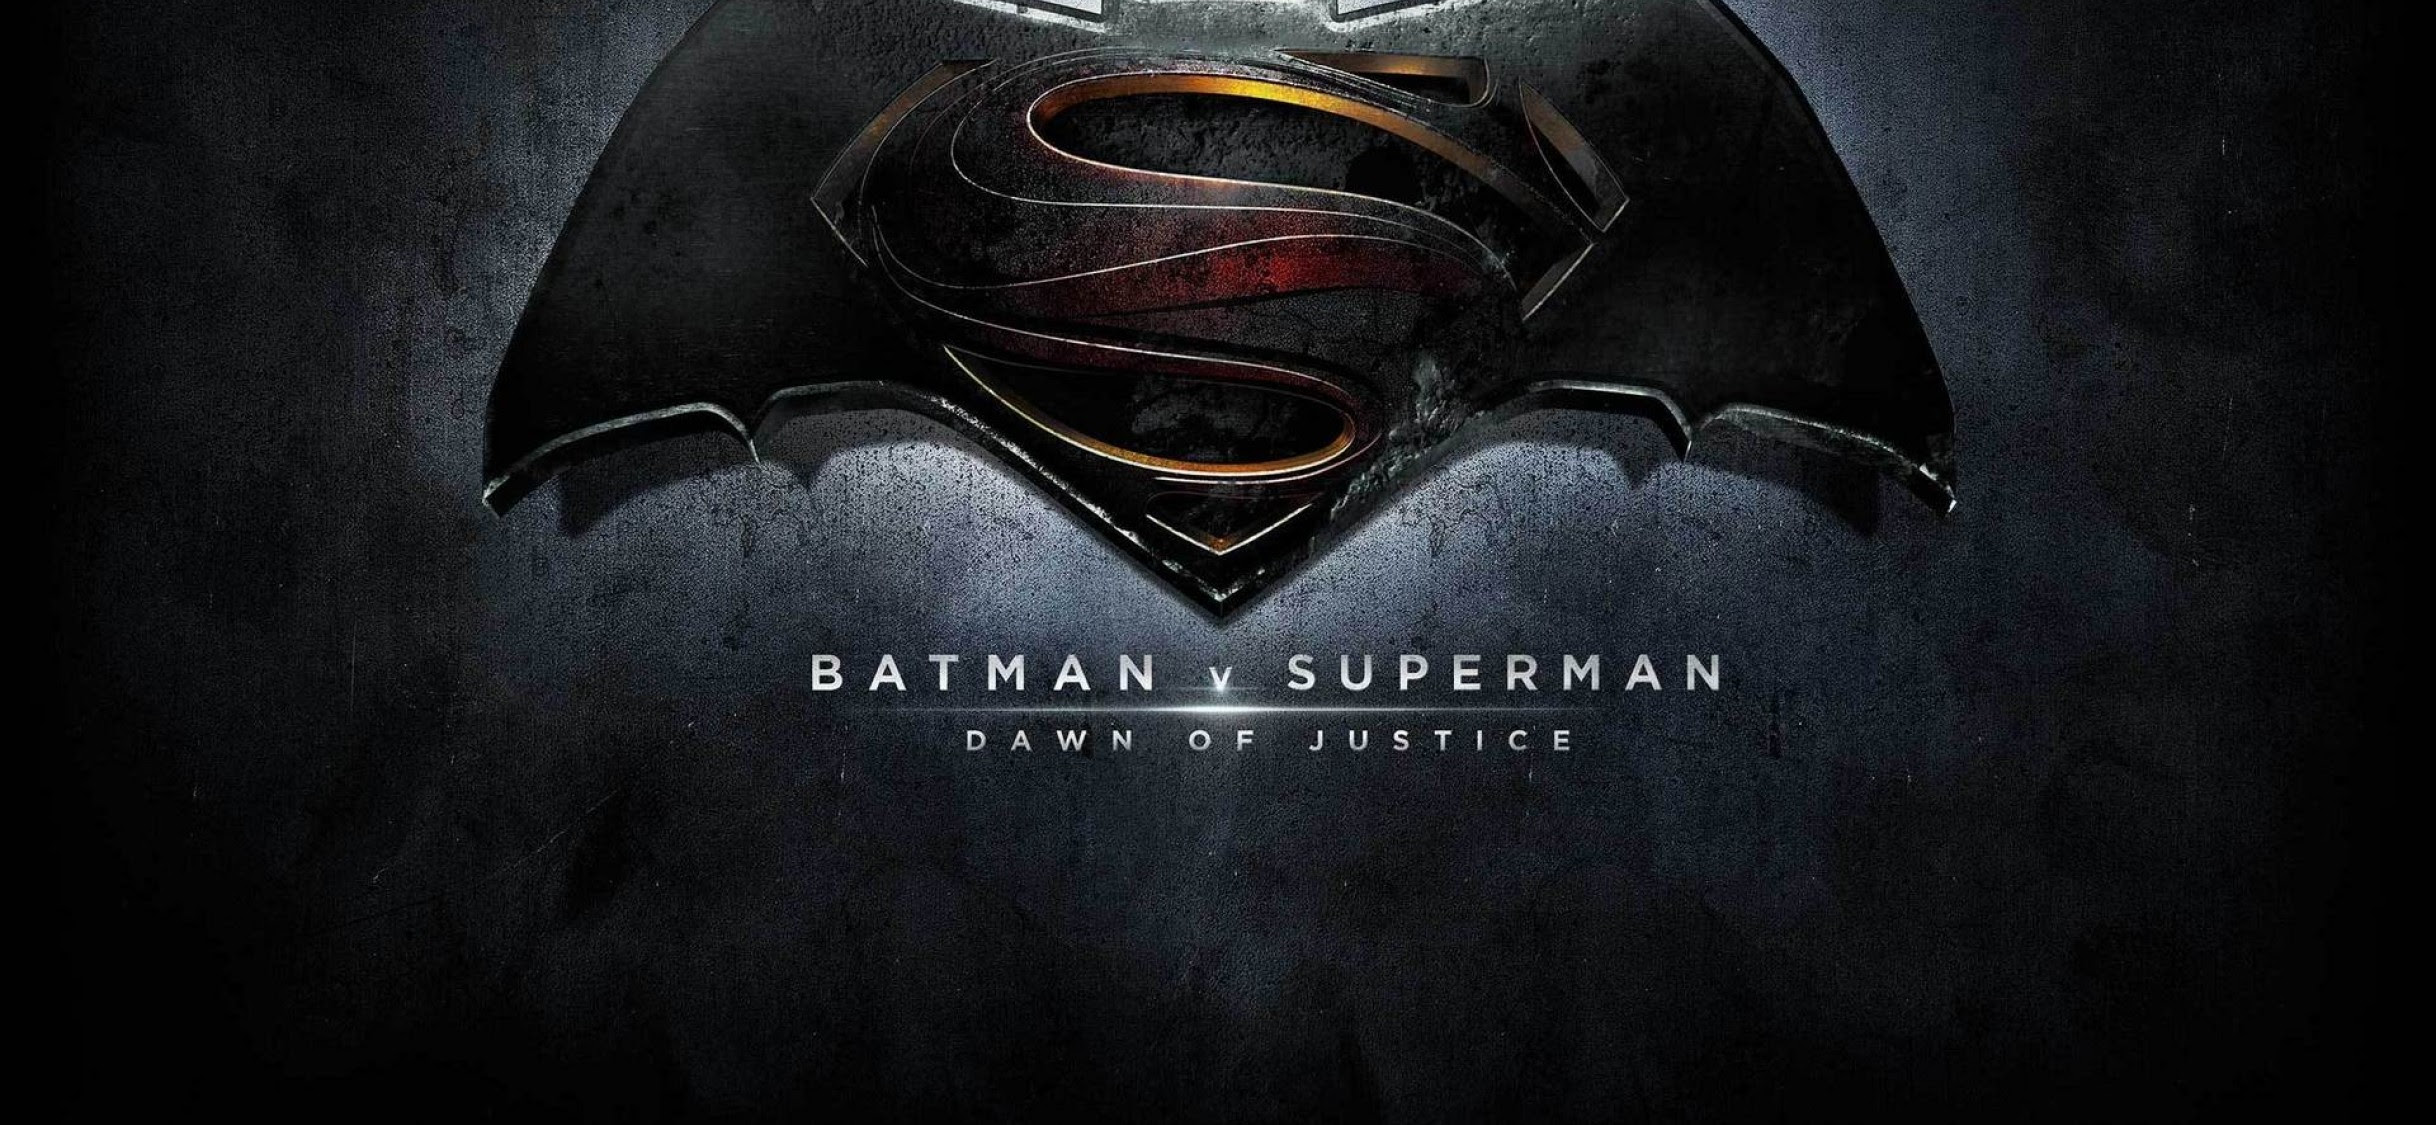 Batman Vs Superman Wallpaper For Desktop And Mobiles Iphone X Hd